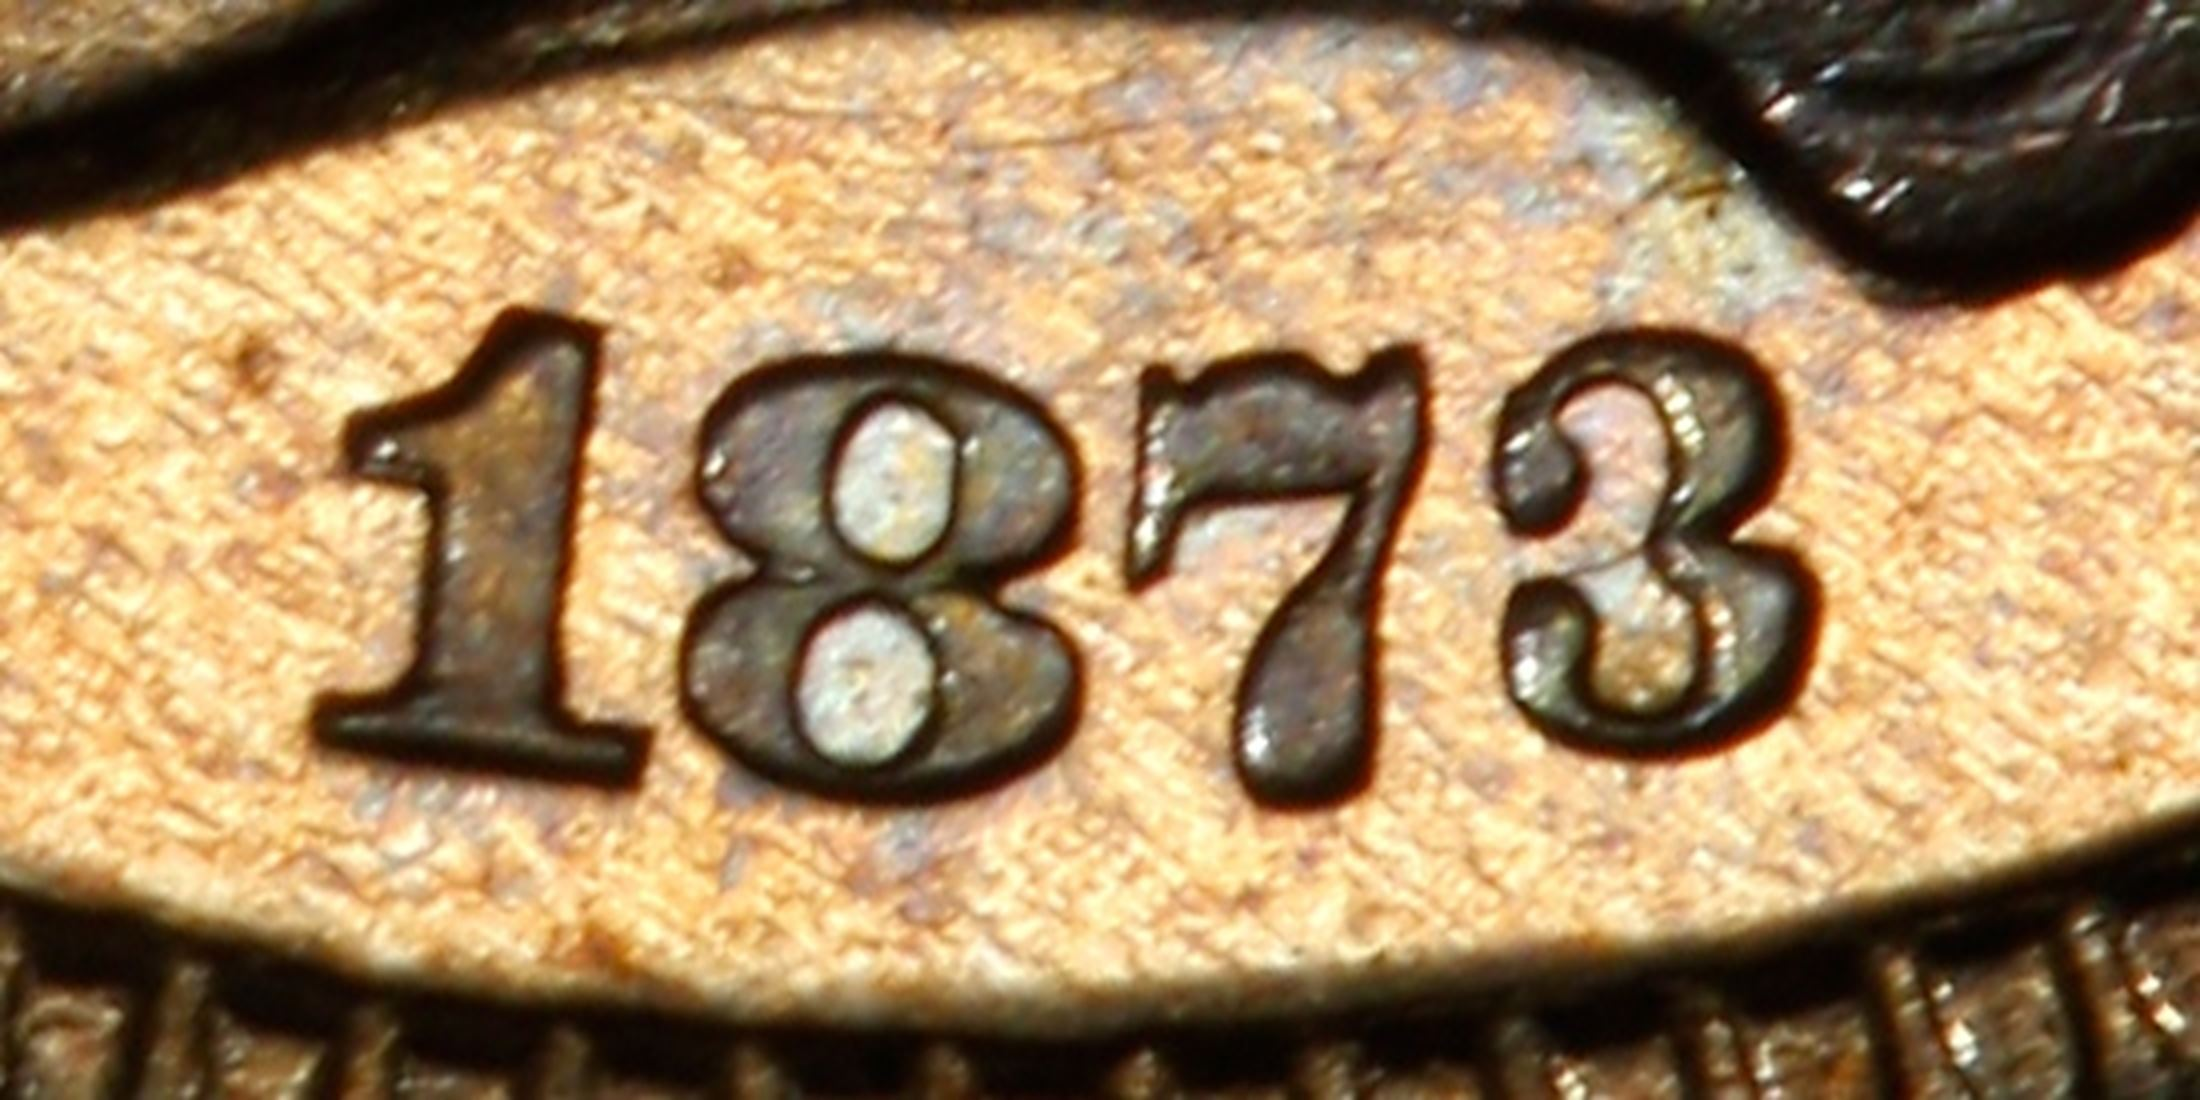 1873 3CN Closed 3 (Proof) Three Cent Nickel - PCGS CoinFacts